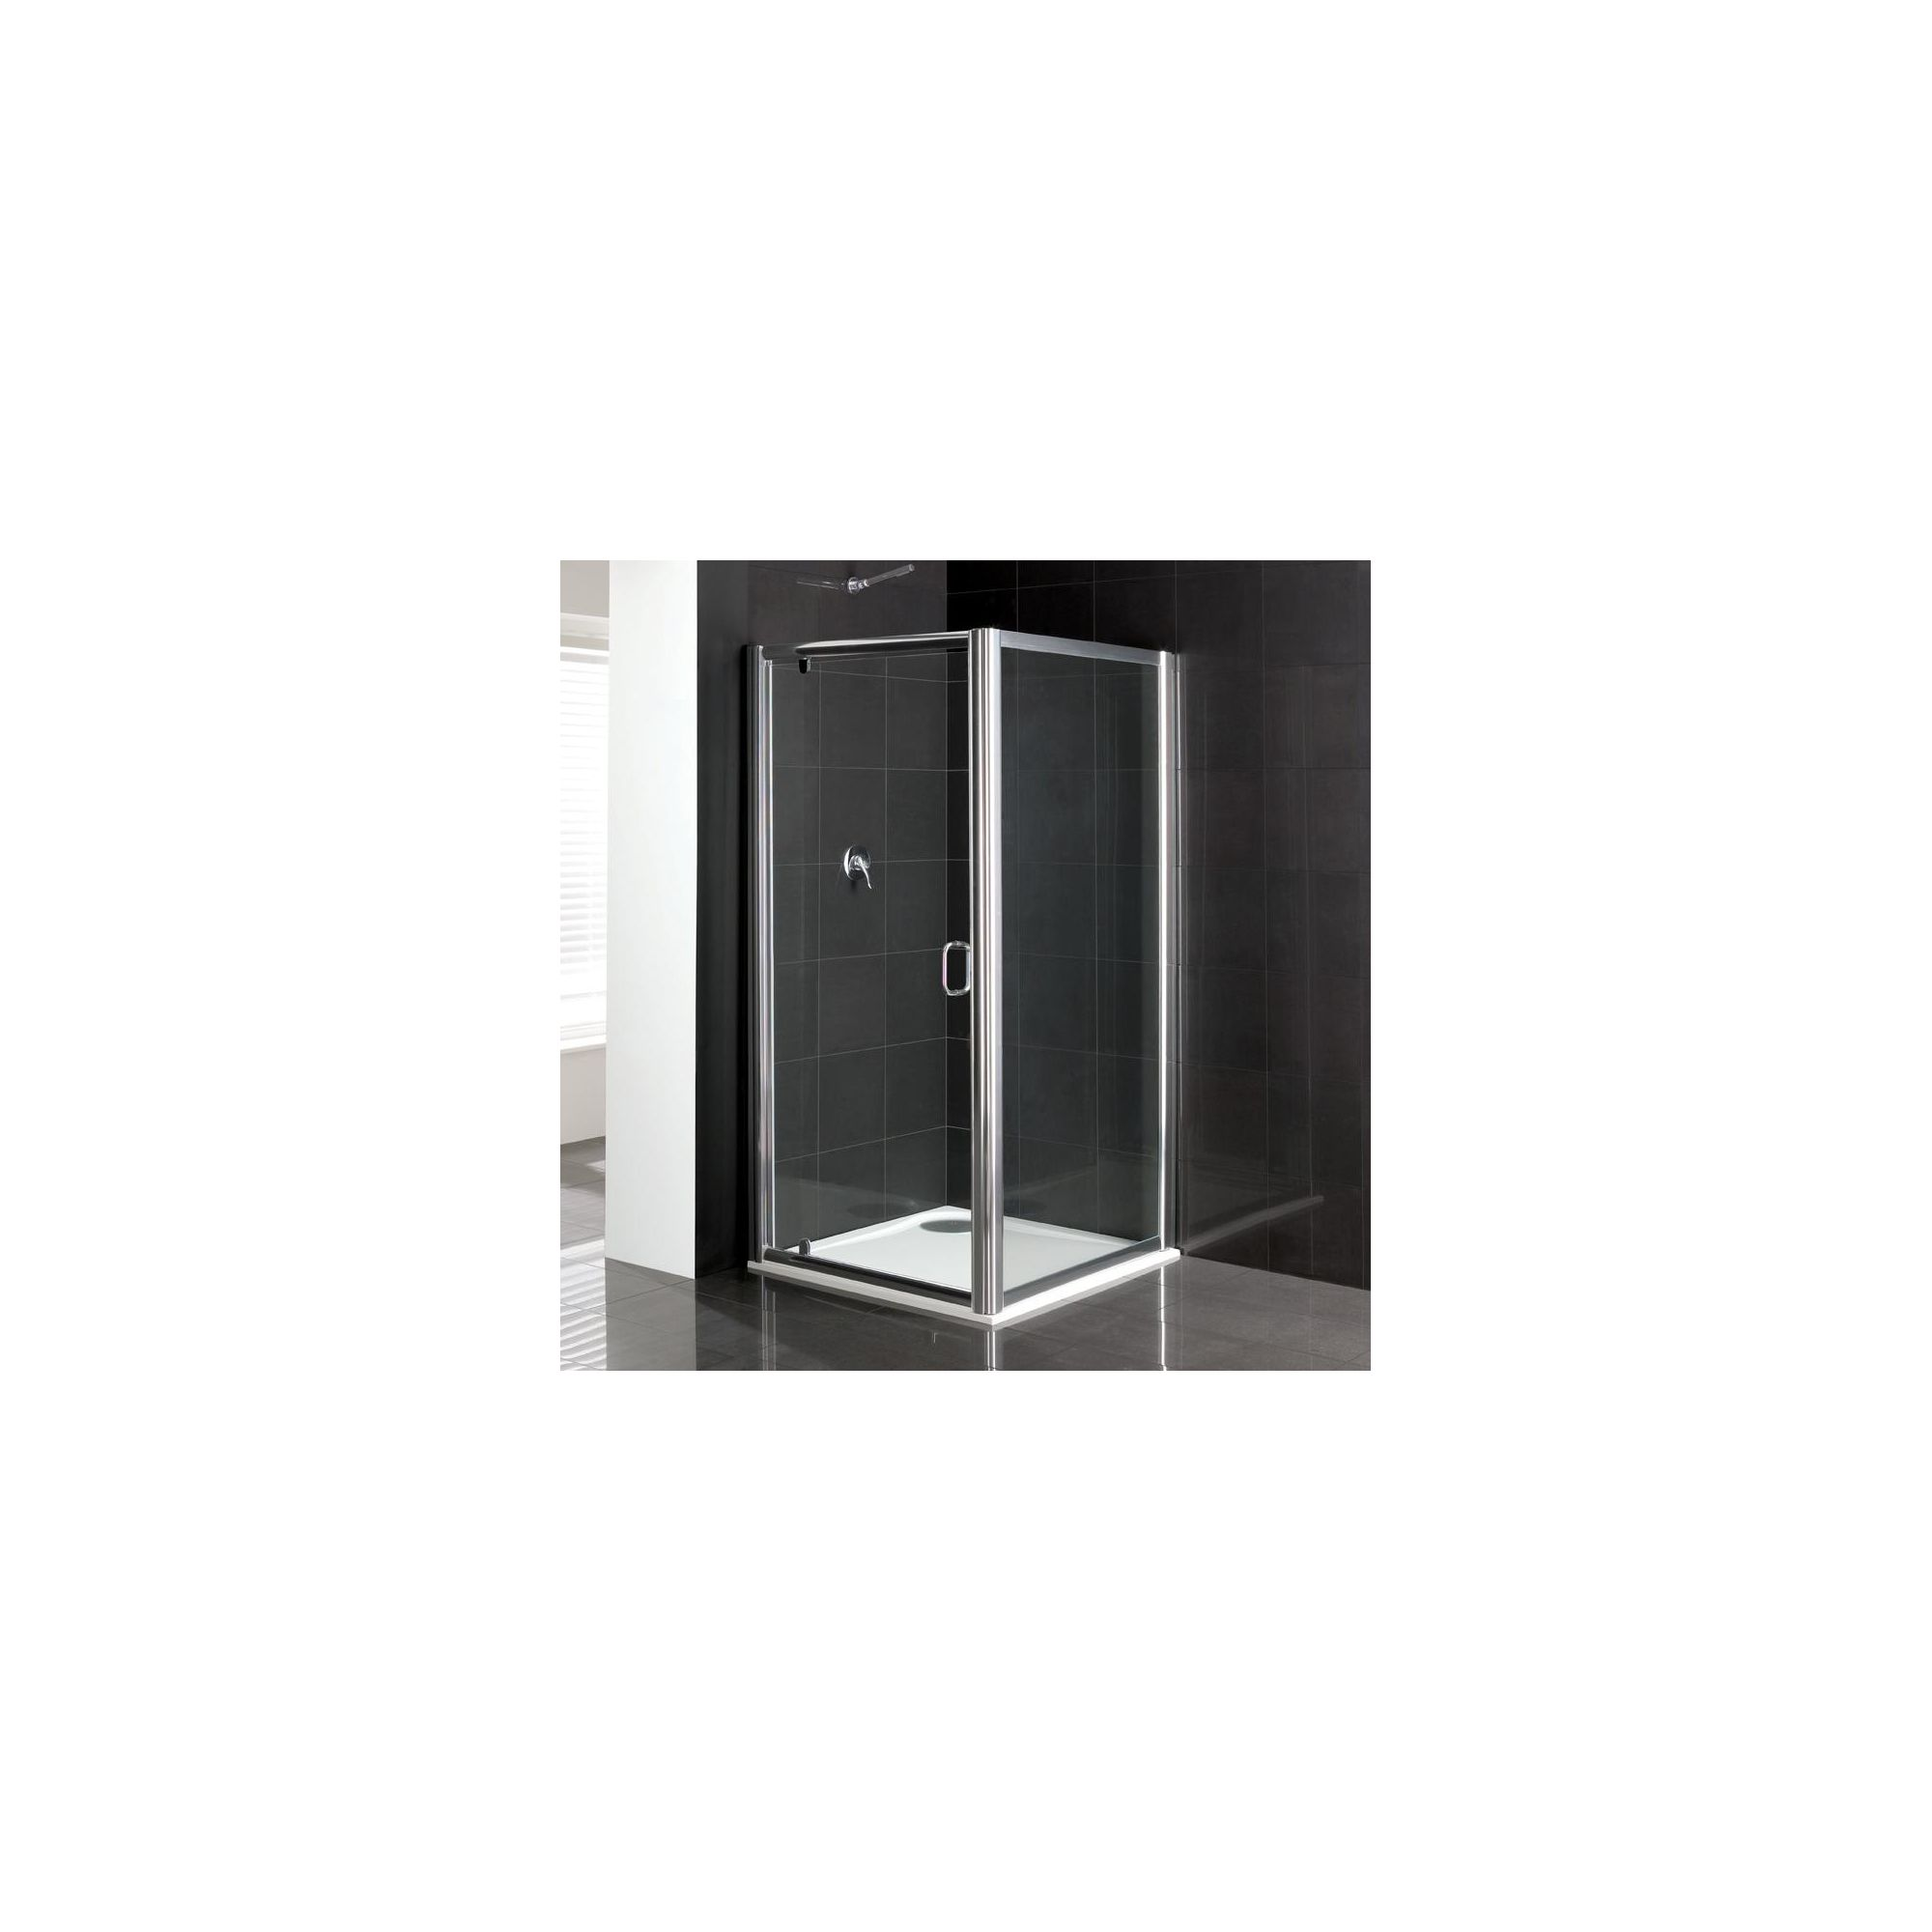 Duchy Elite Silver Pivot Door Shower Enclosure with Towel Rail, 1000mm x 800mm, Standard Tray, 6mm Glass at Tesco Direct